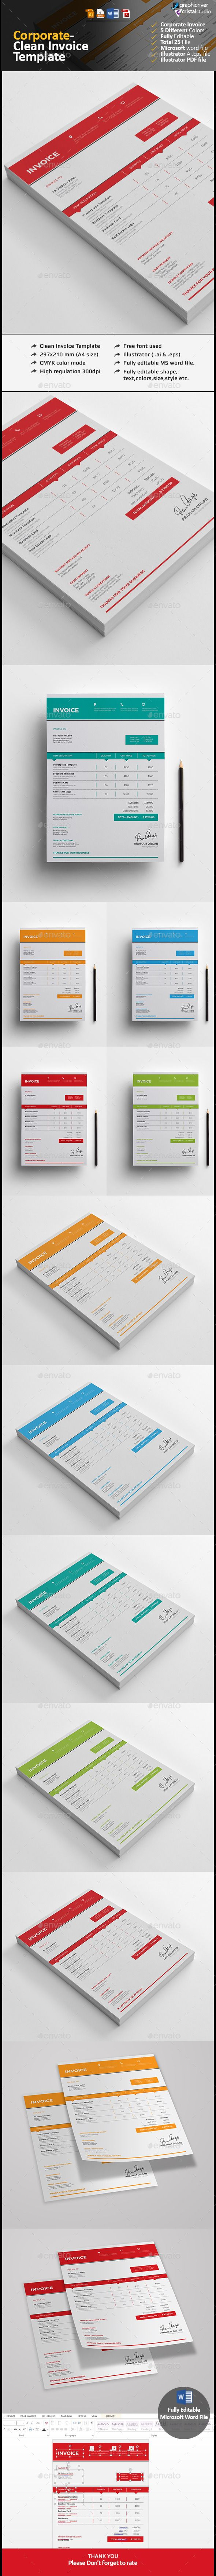 Corporate Invoice Template is very easy to use and change text,color,size,look and everything and included AI,EPS,doc,docx & PDF File so please don't worry about changing